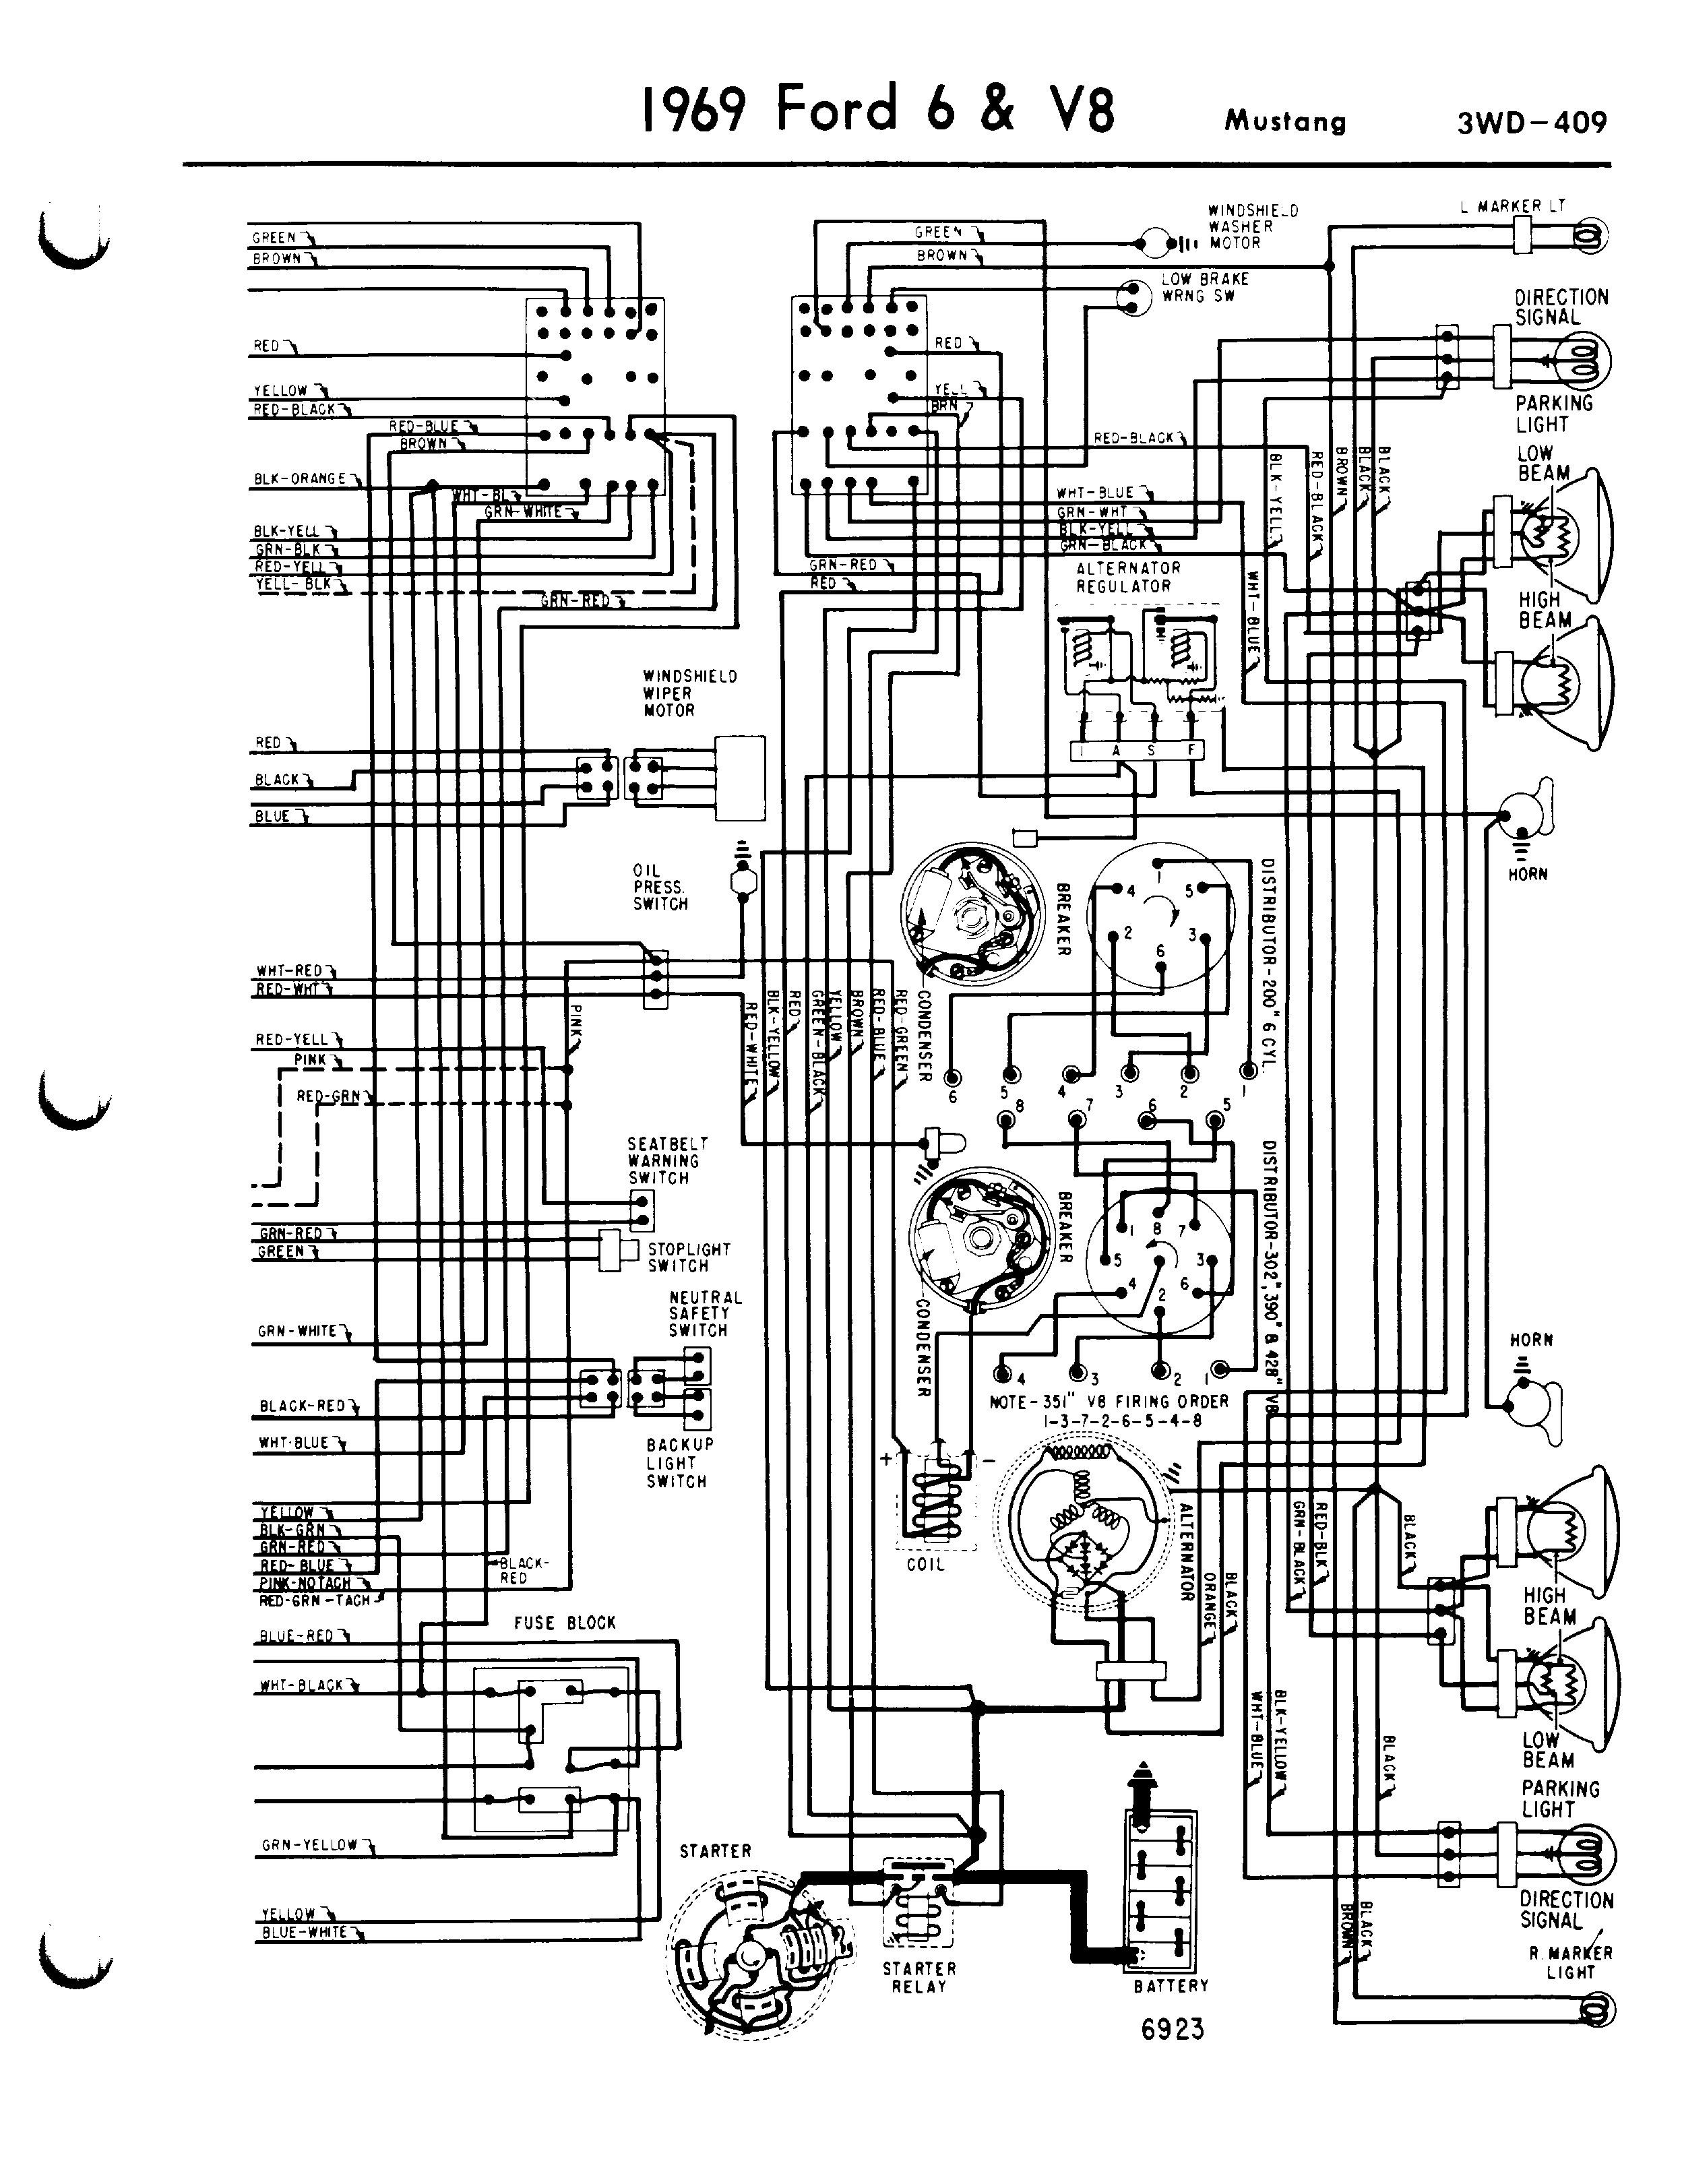 1965 Mustang Wiring Diagram ford Diagrams with Mustang Wiring Diagram Blurts Of 1965 Mustang Wiring Diagram